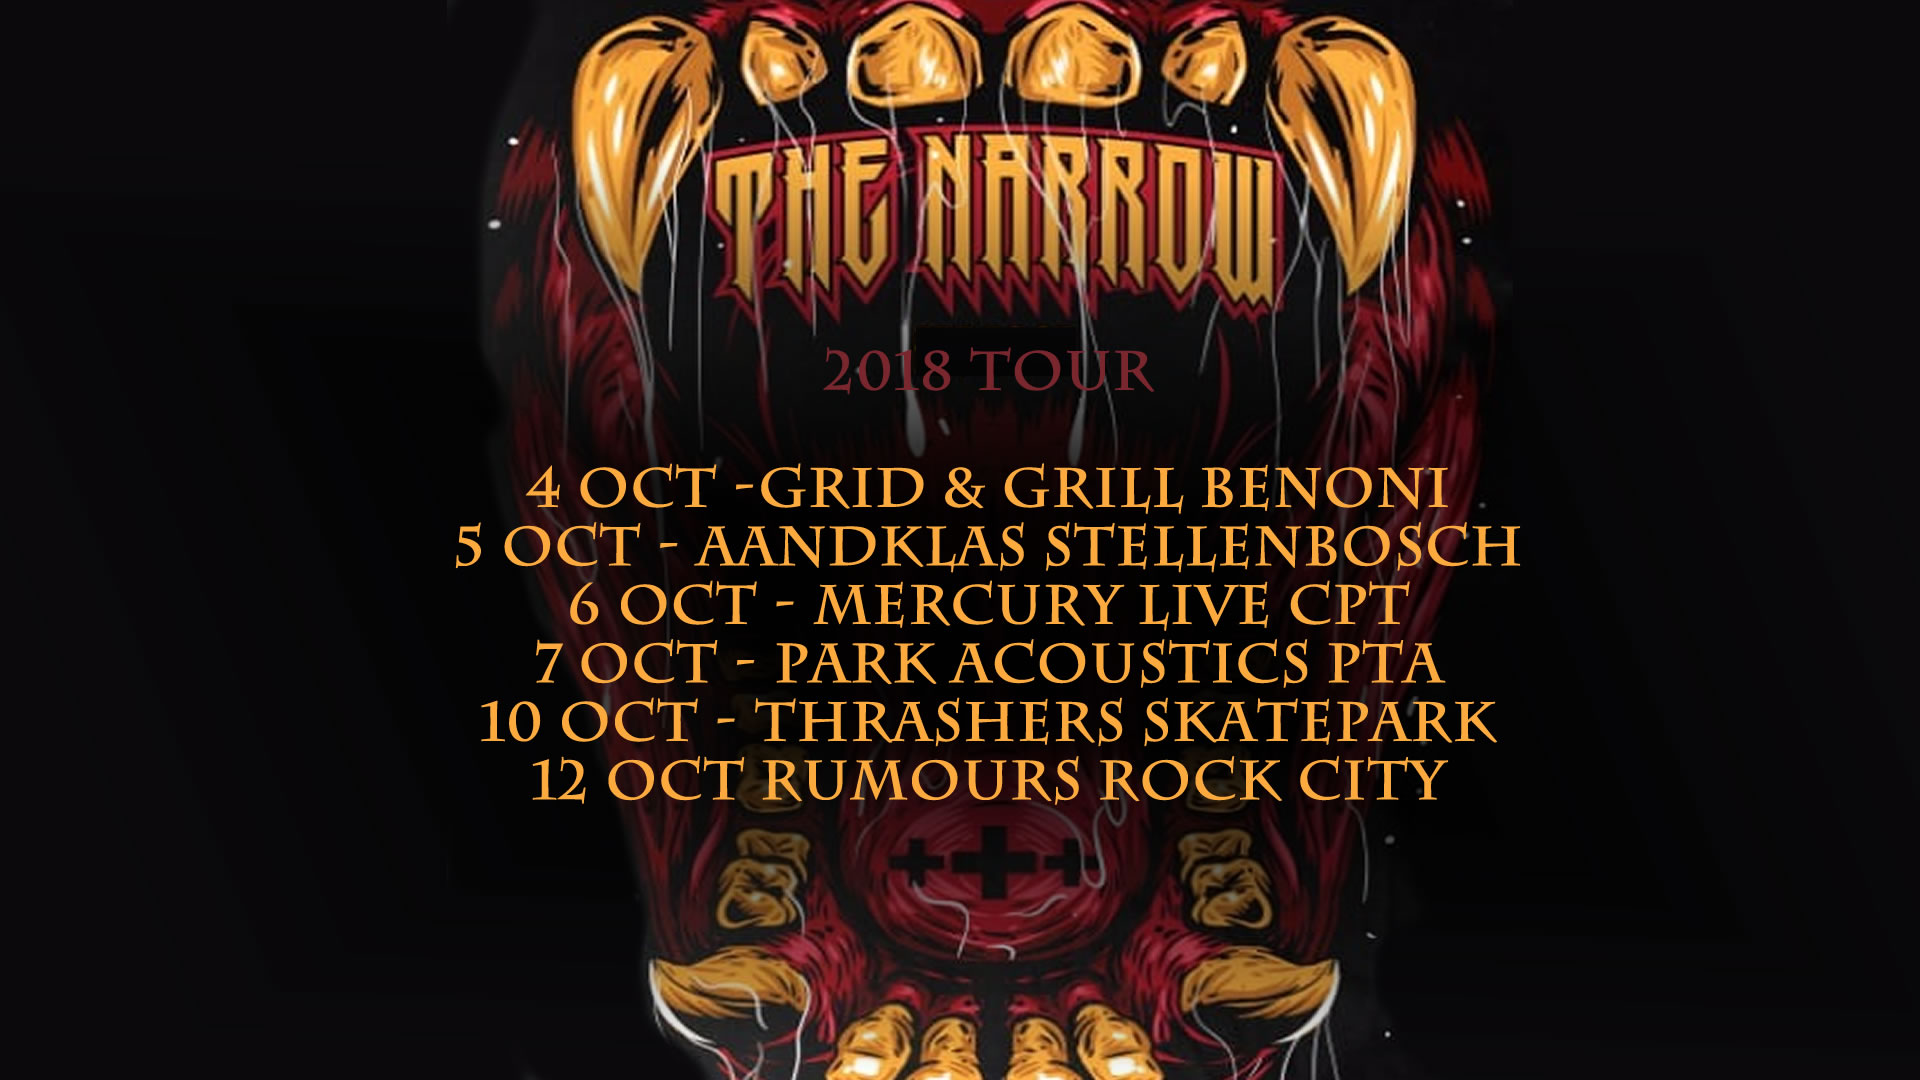 the narrow tour 2018